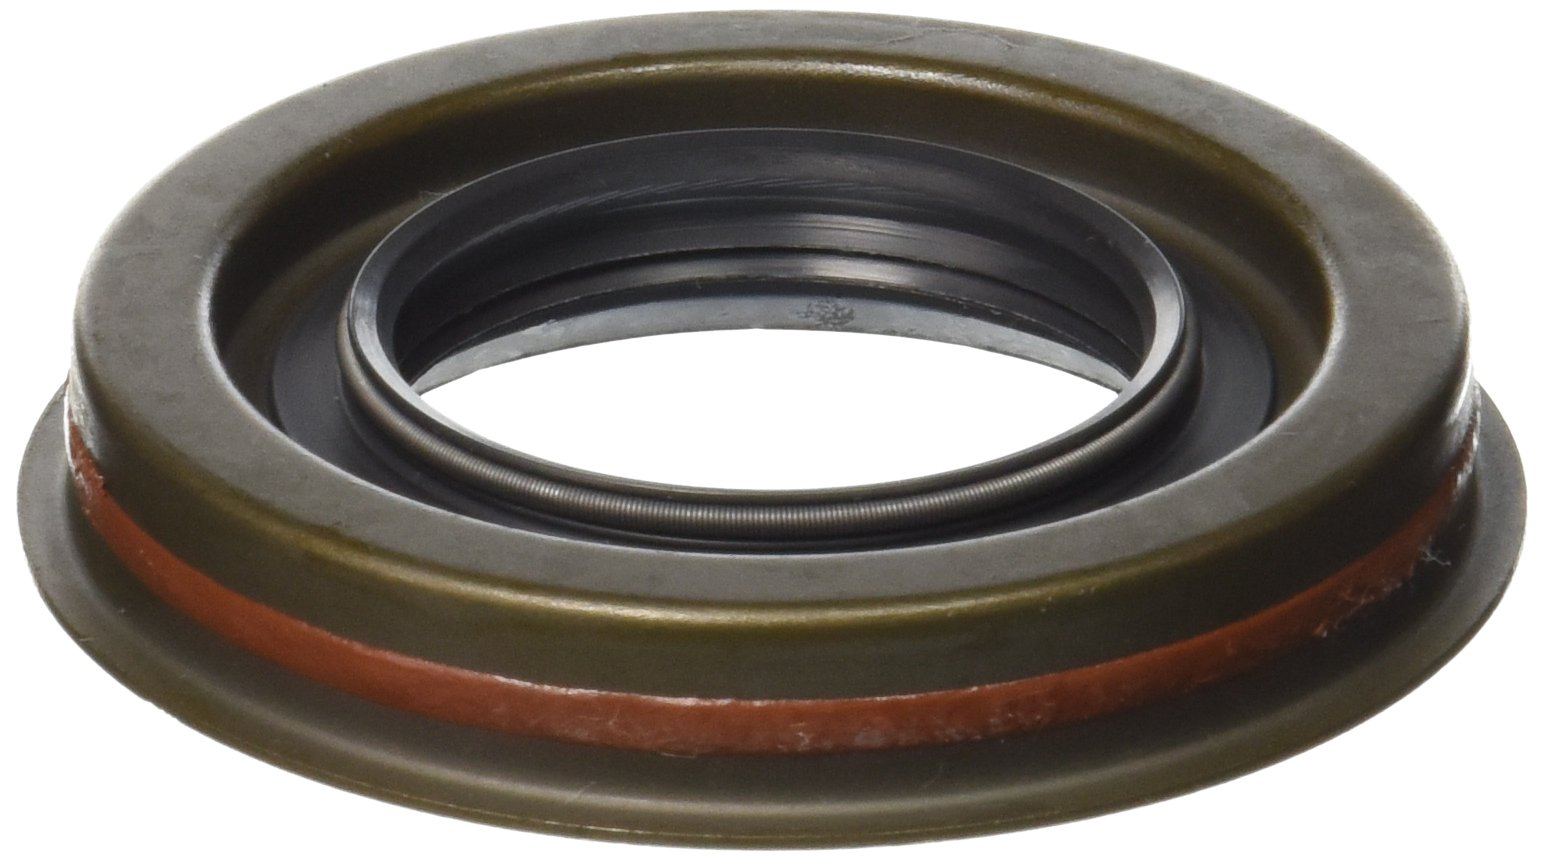 Genuine Nissan 38189-8S110 Drive Pinion Oil Seal